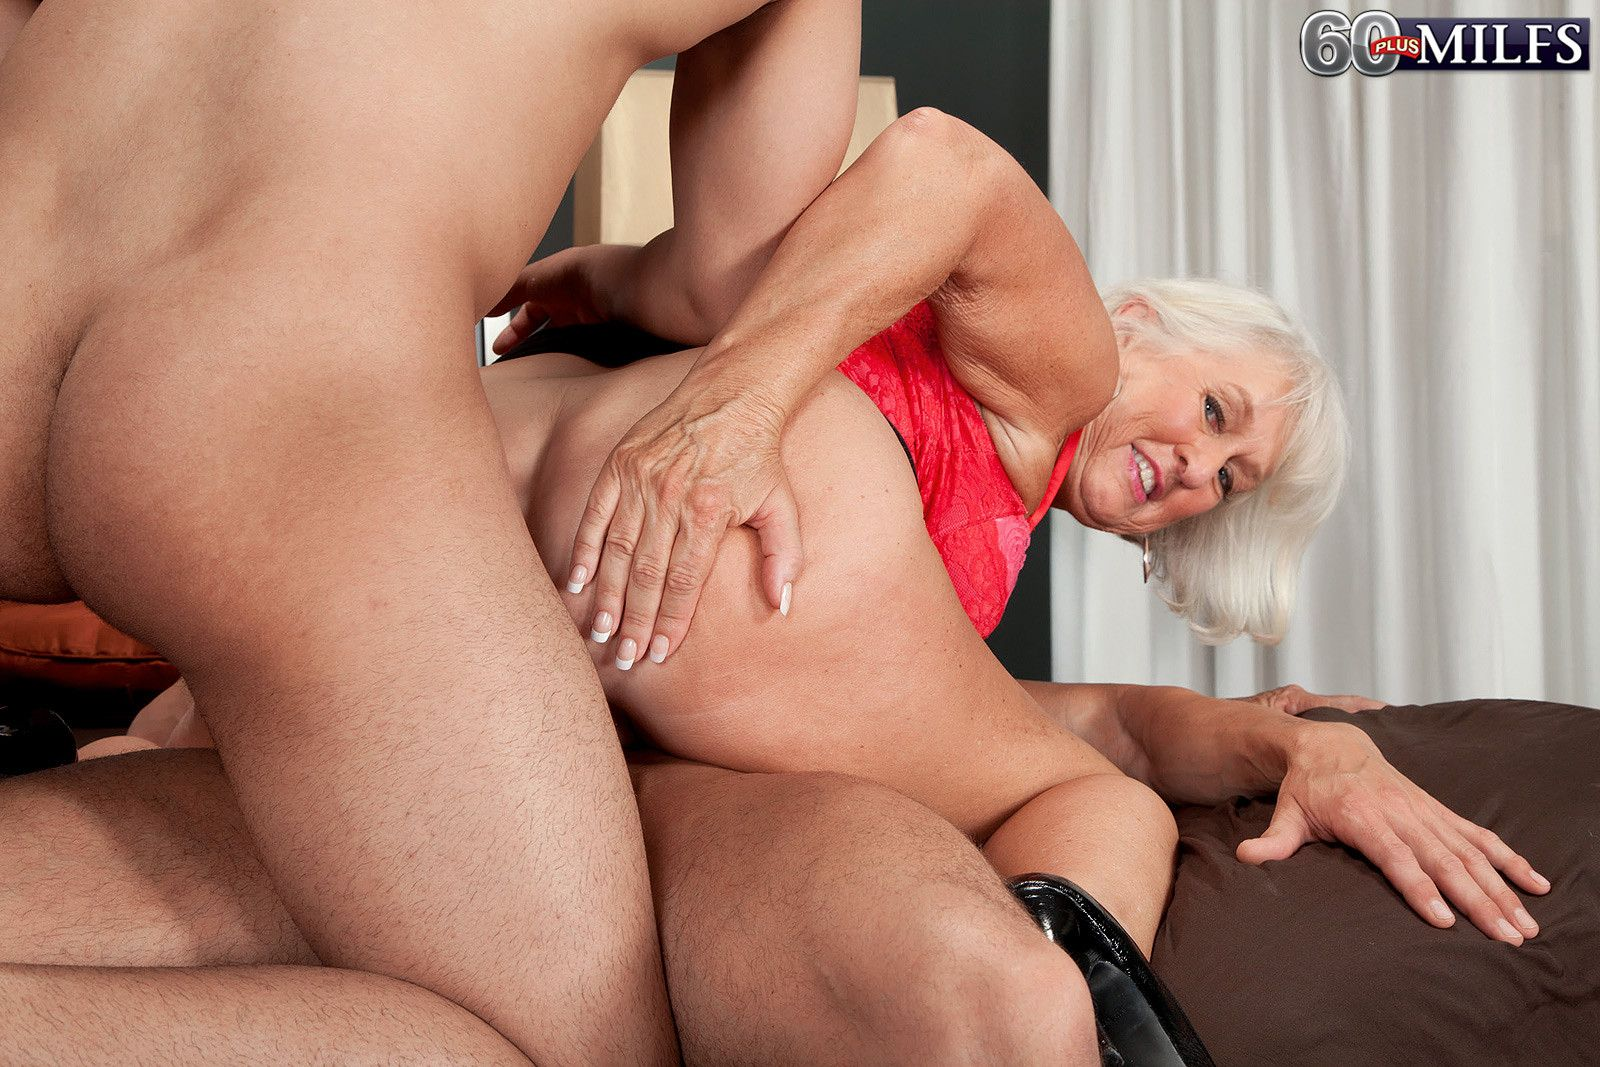 Grandma double penetration